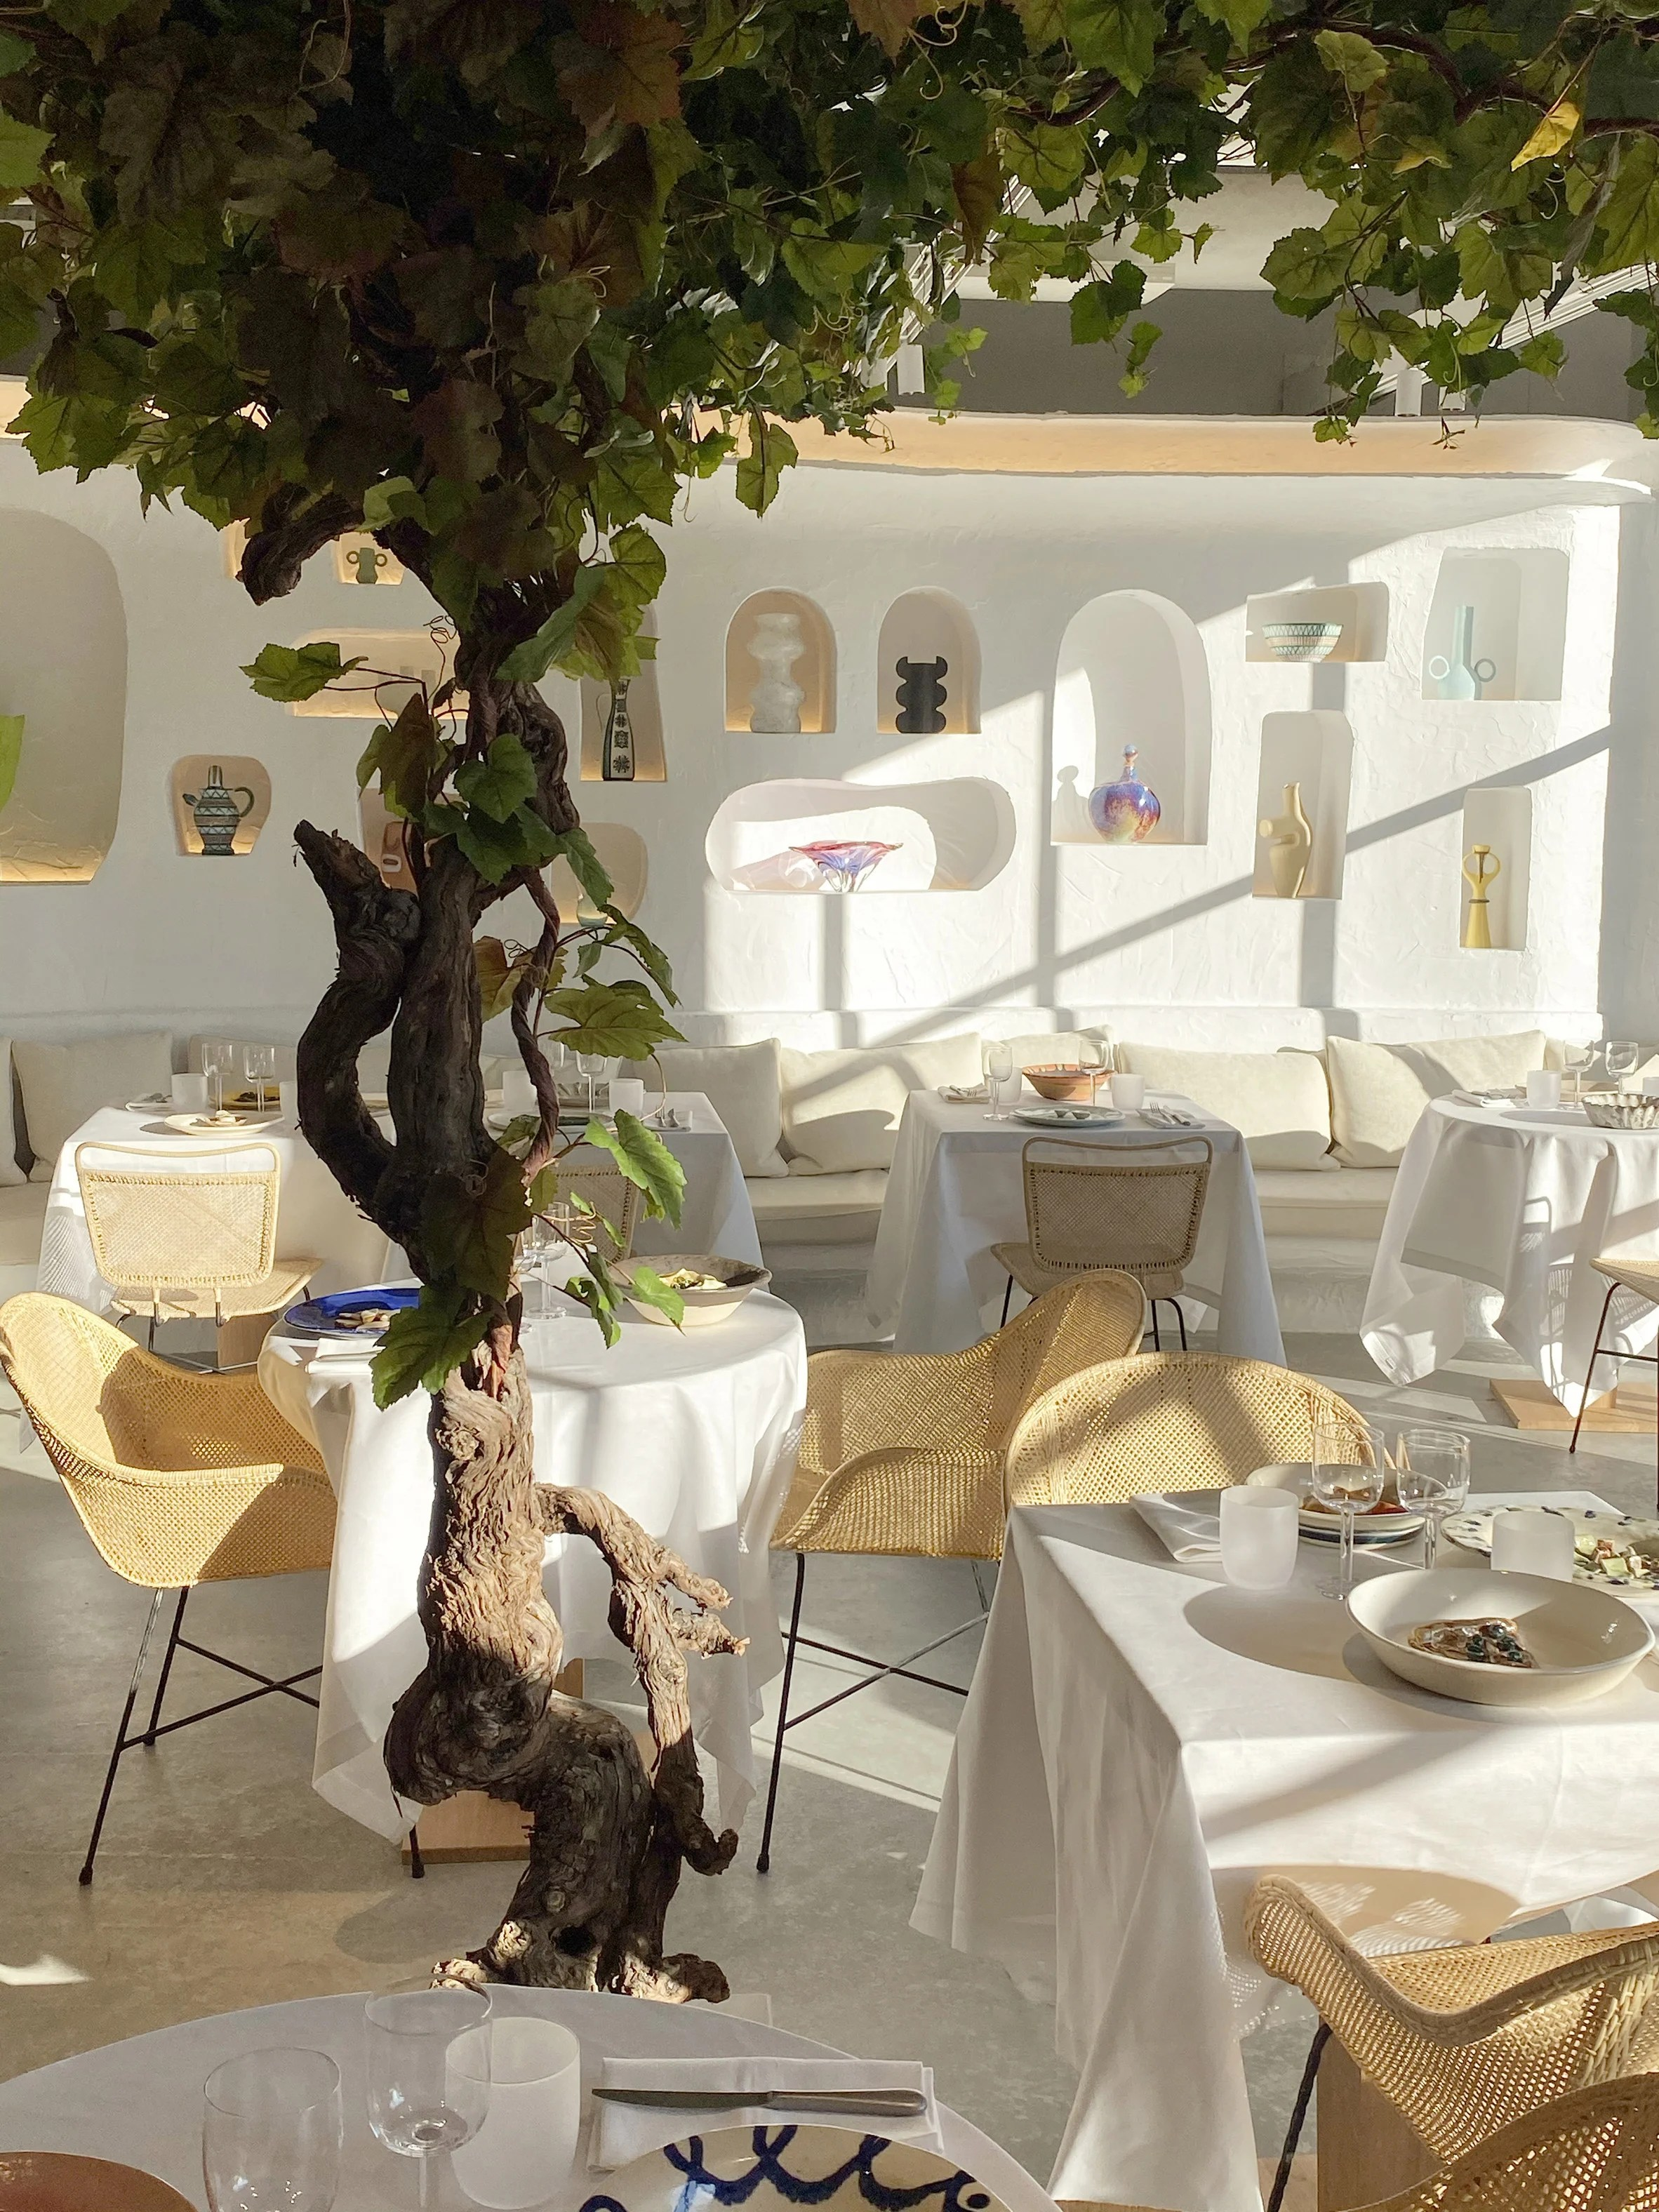 Oursin restaurant designed by Jacquemus